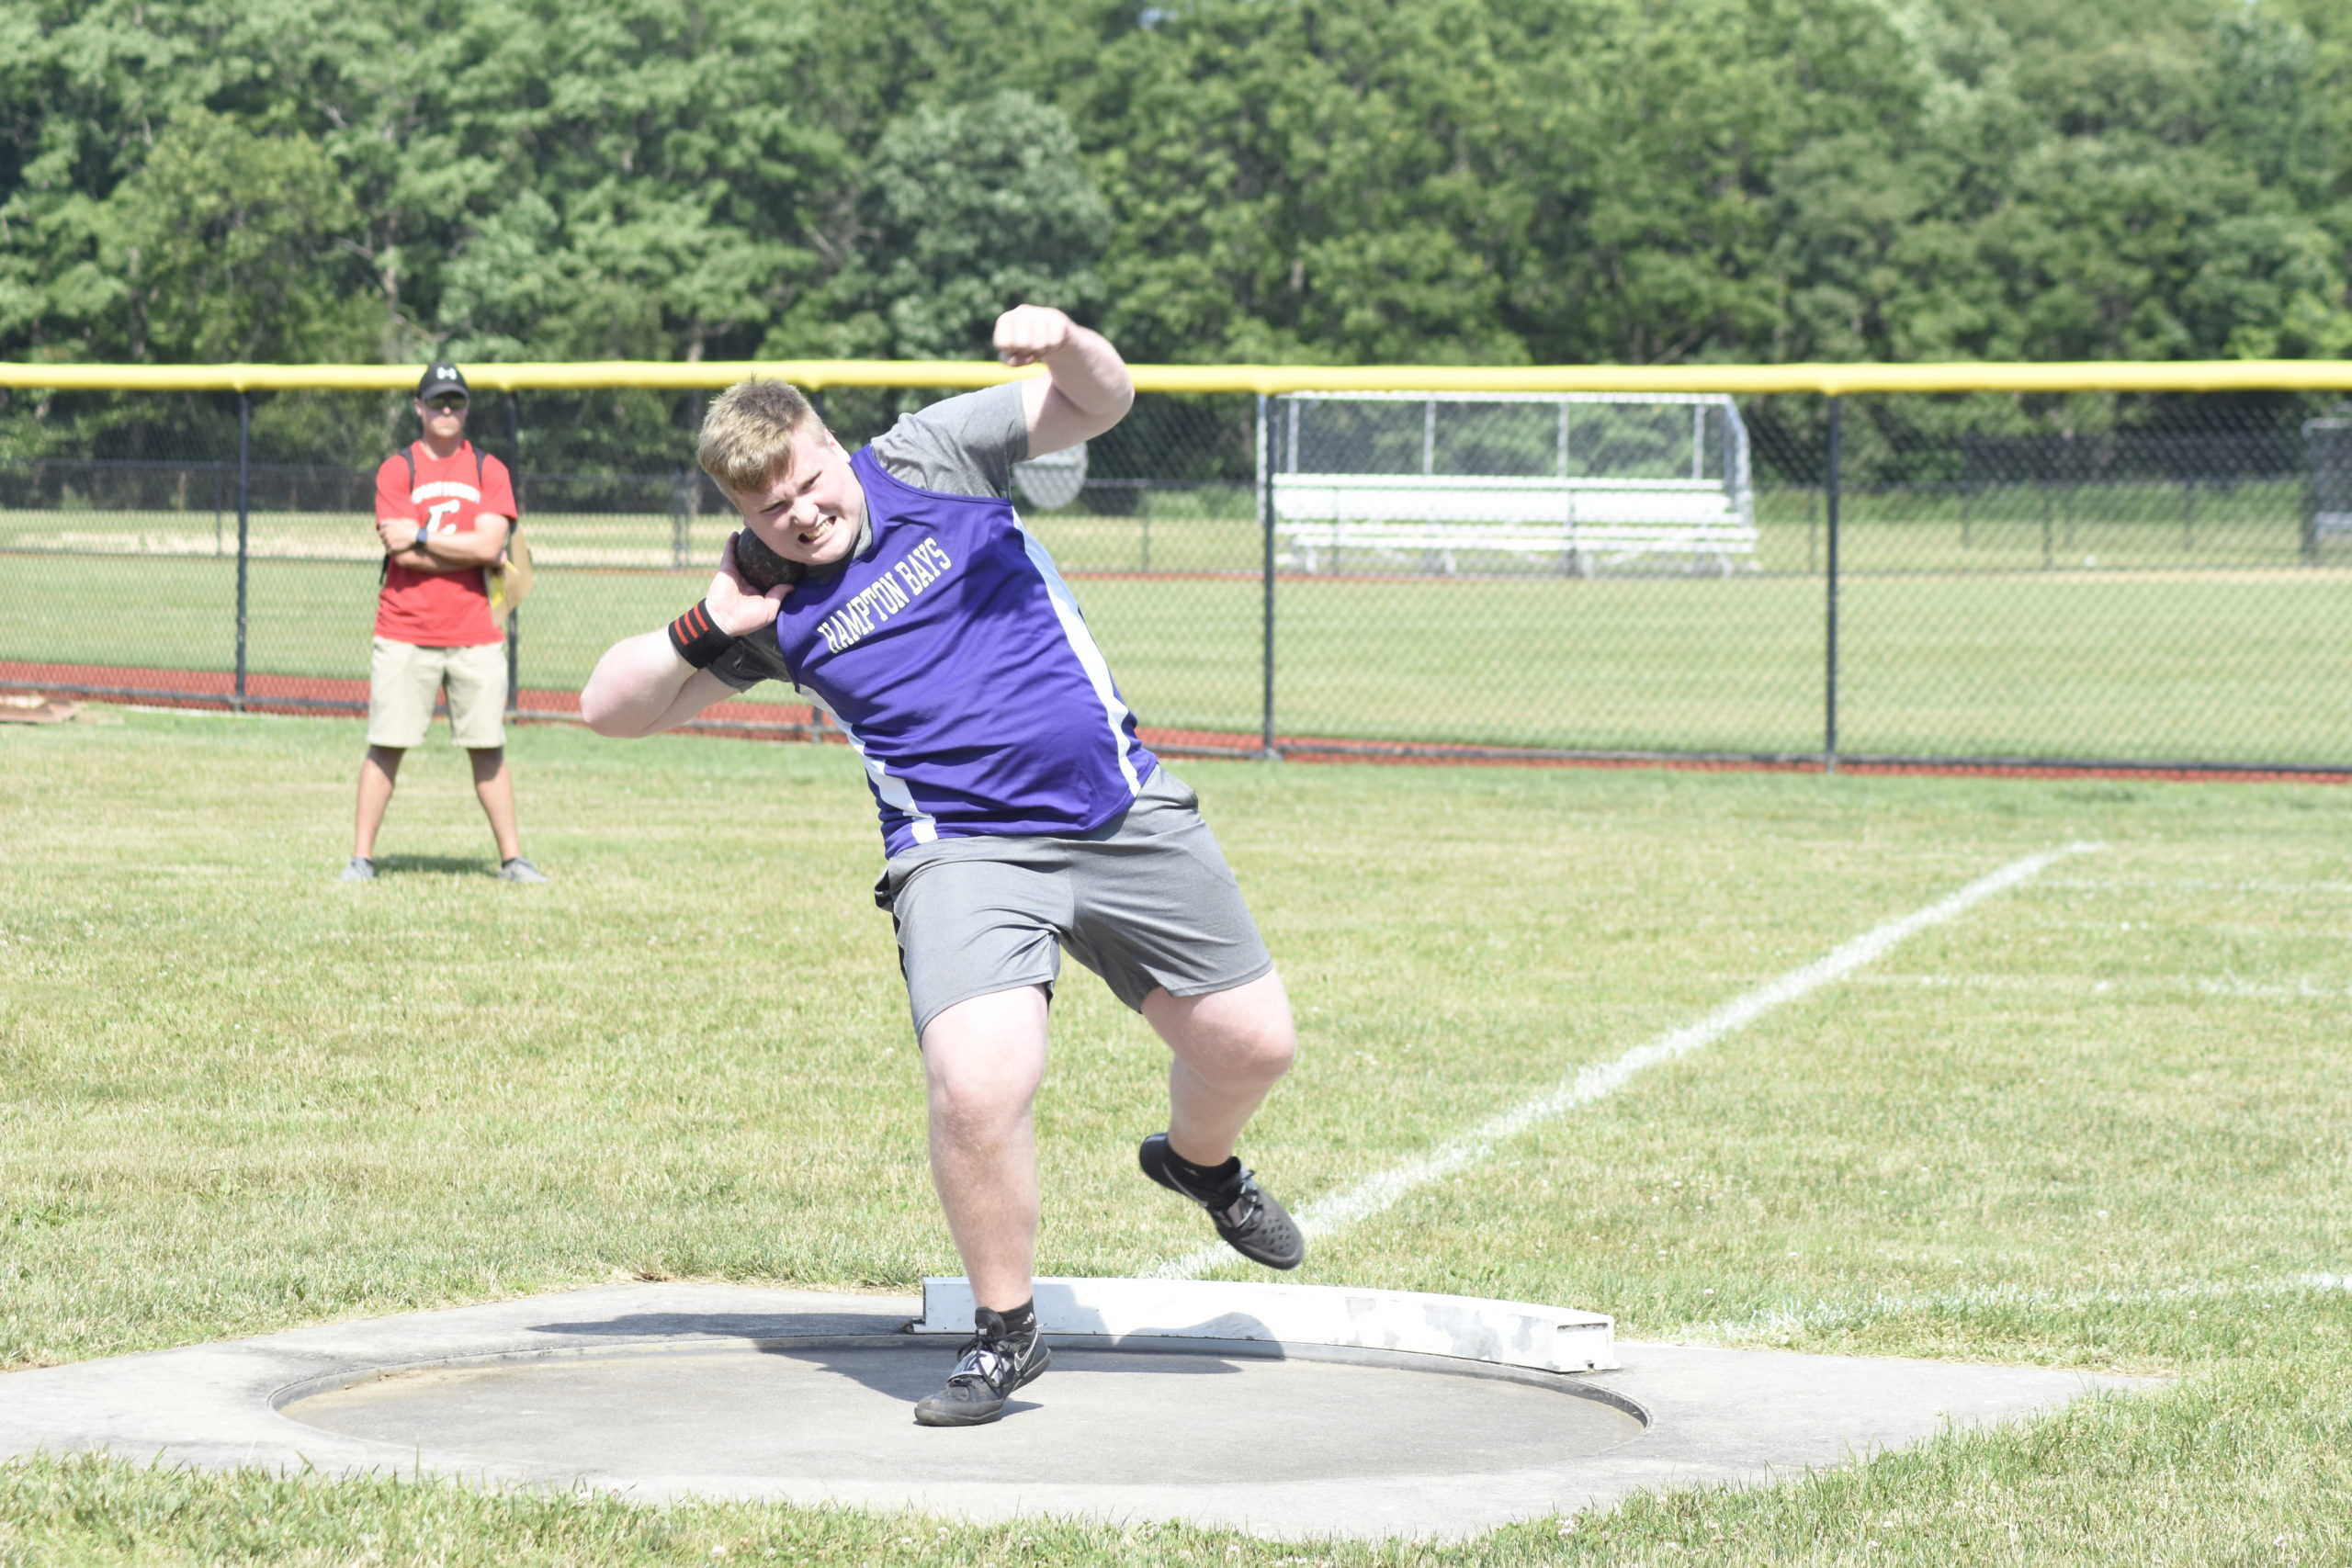 Hampton Bays junior Timothy Kraycar finished 11th in the shot put at the Section XI boys track championships on Friday.